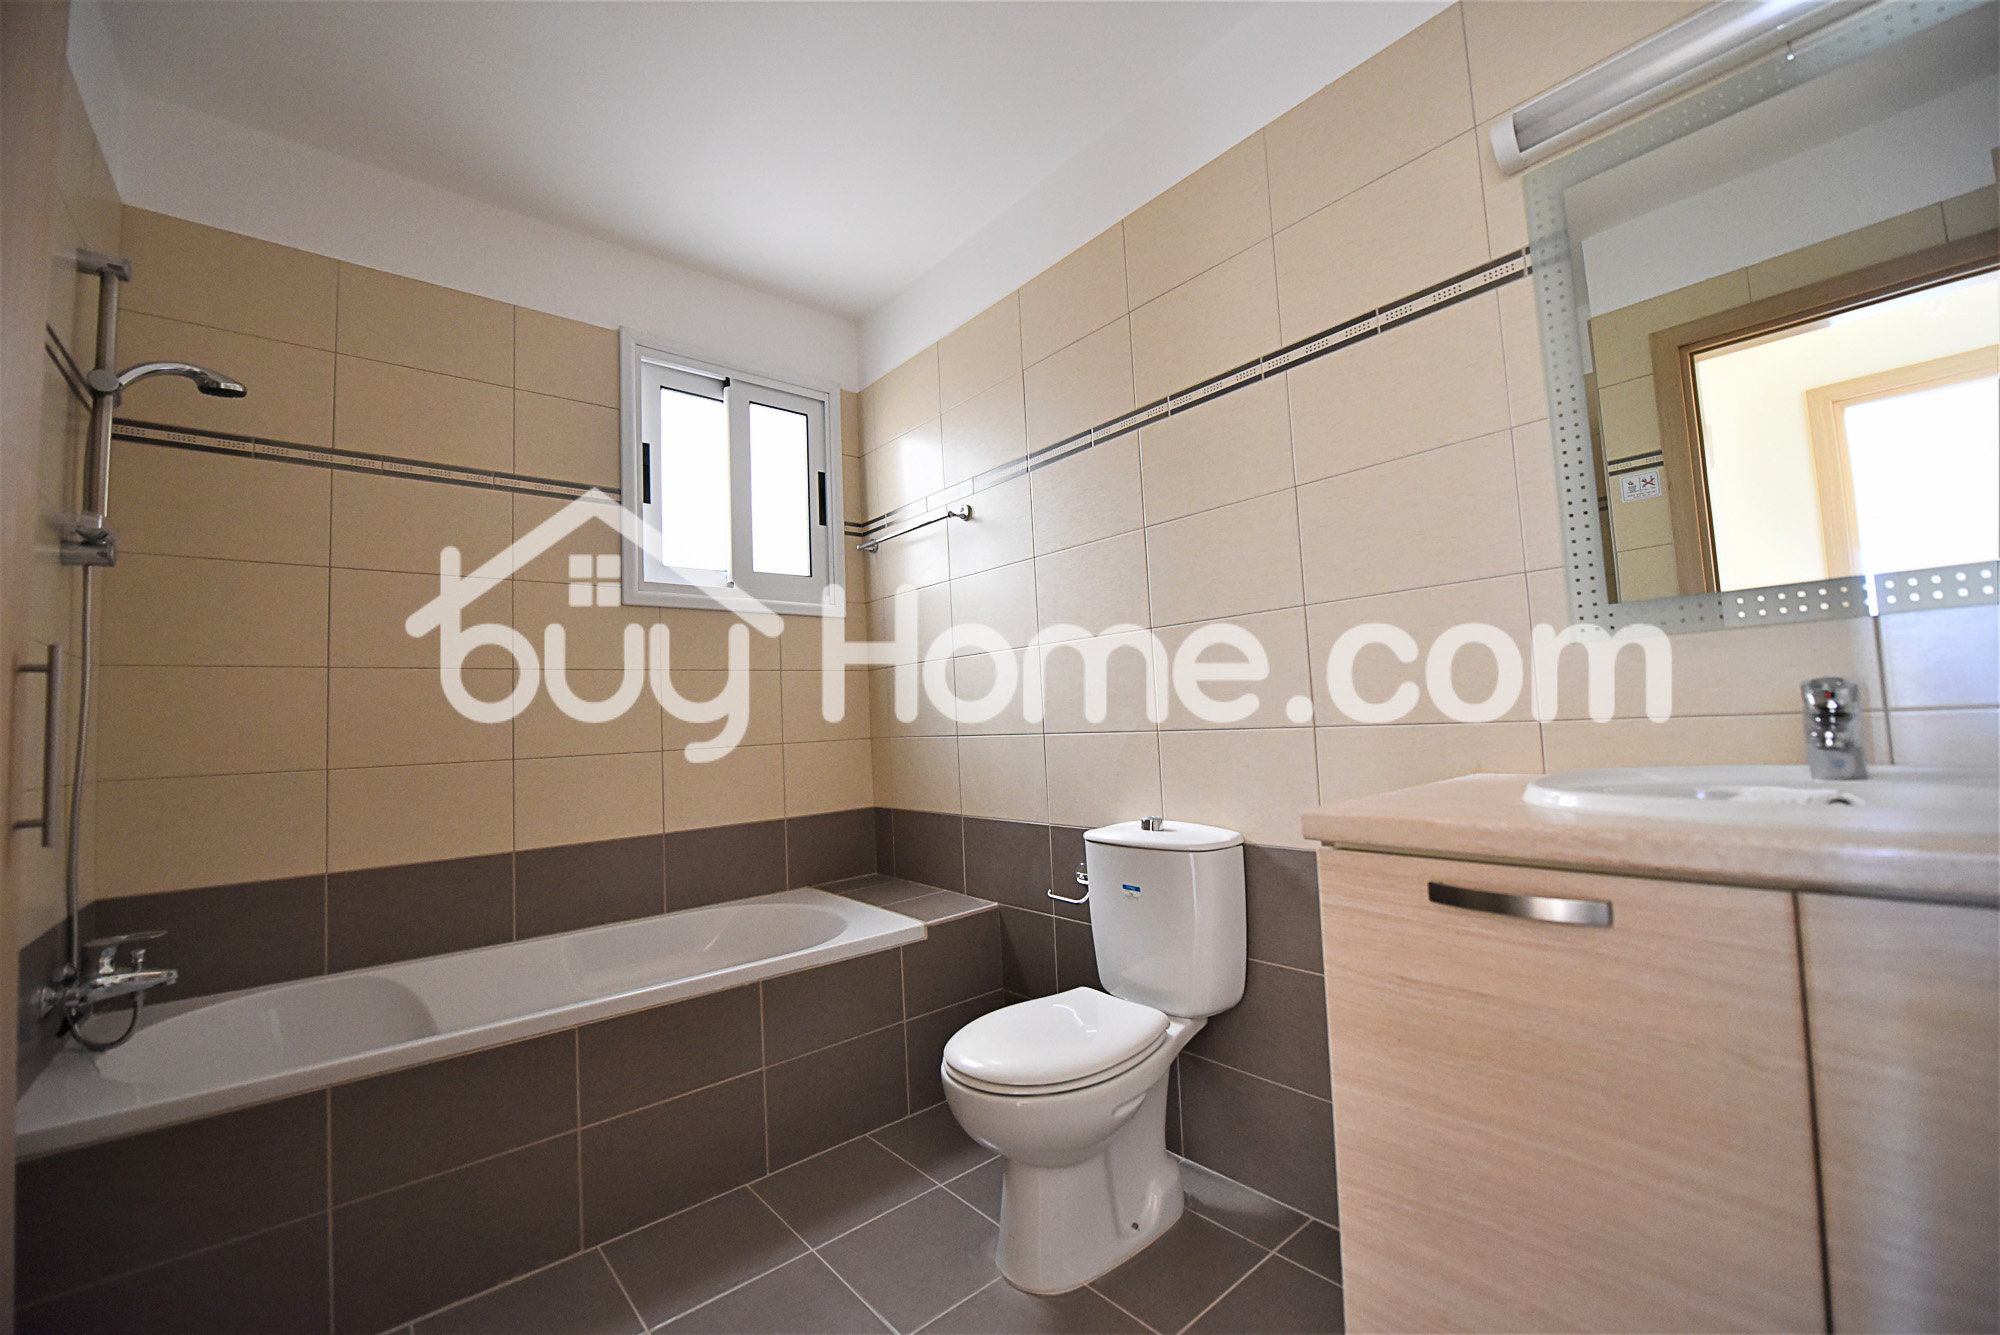 Investment package of 3 Apartments | BuyHome